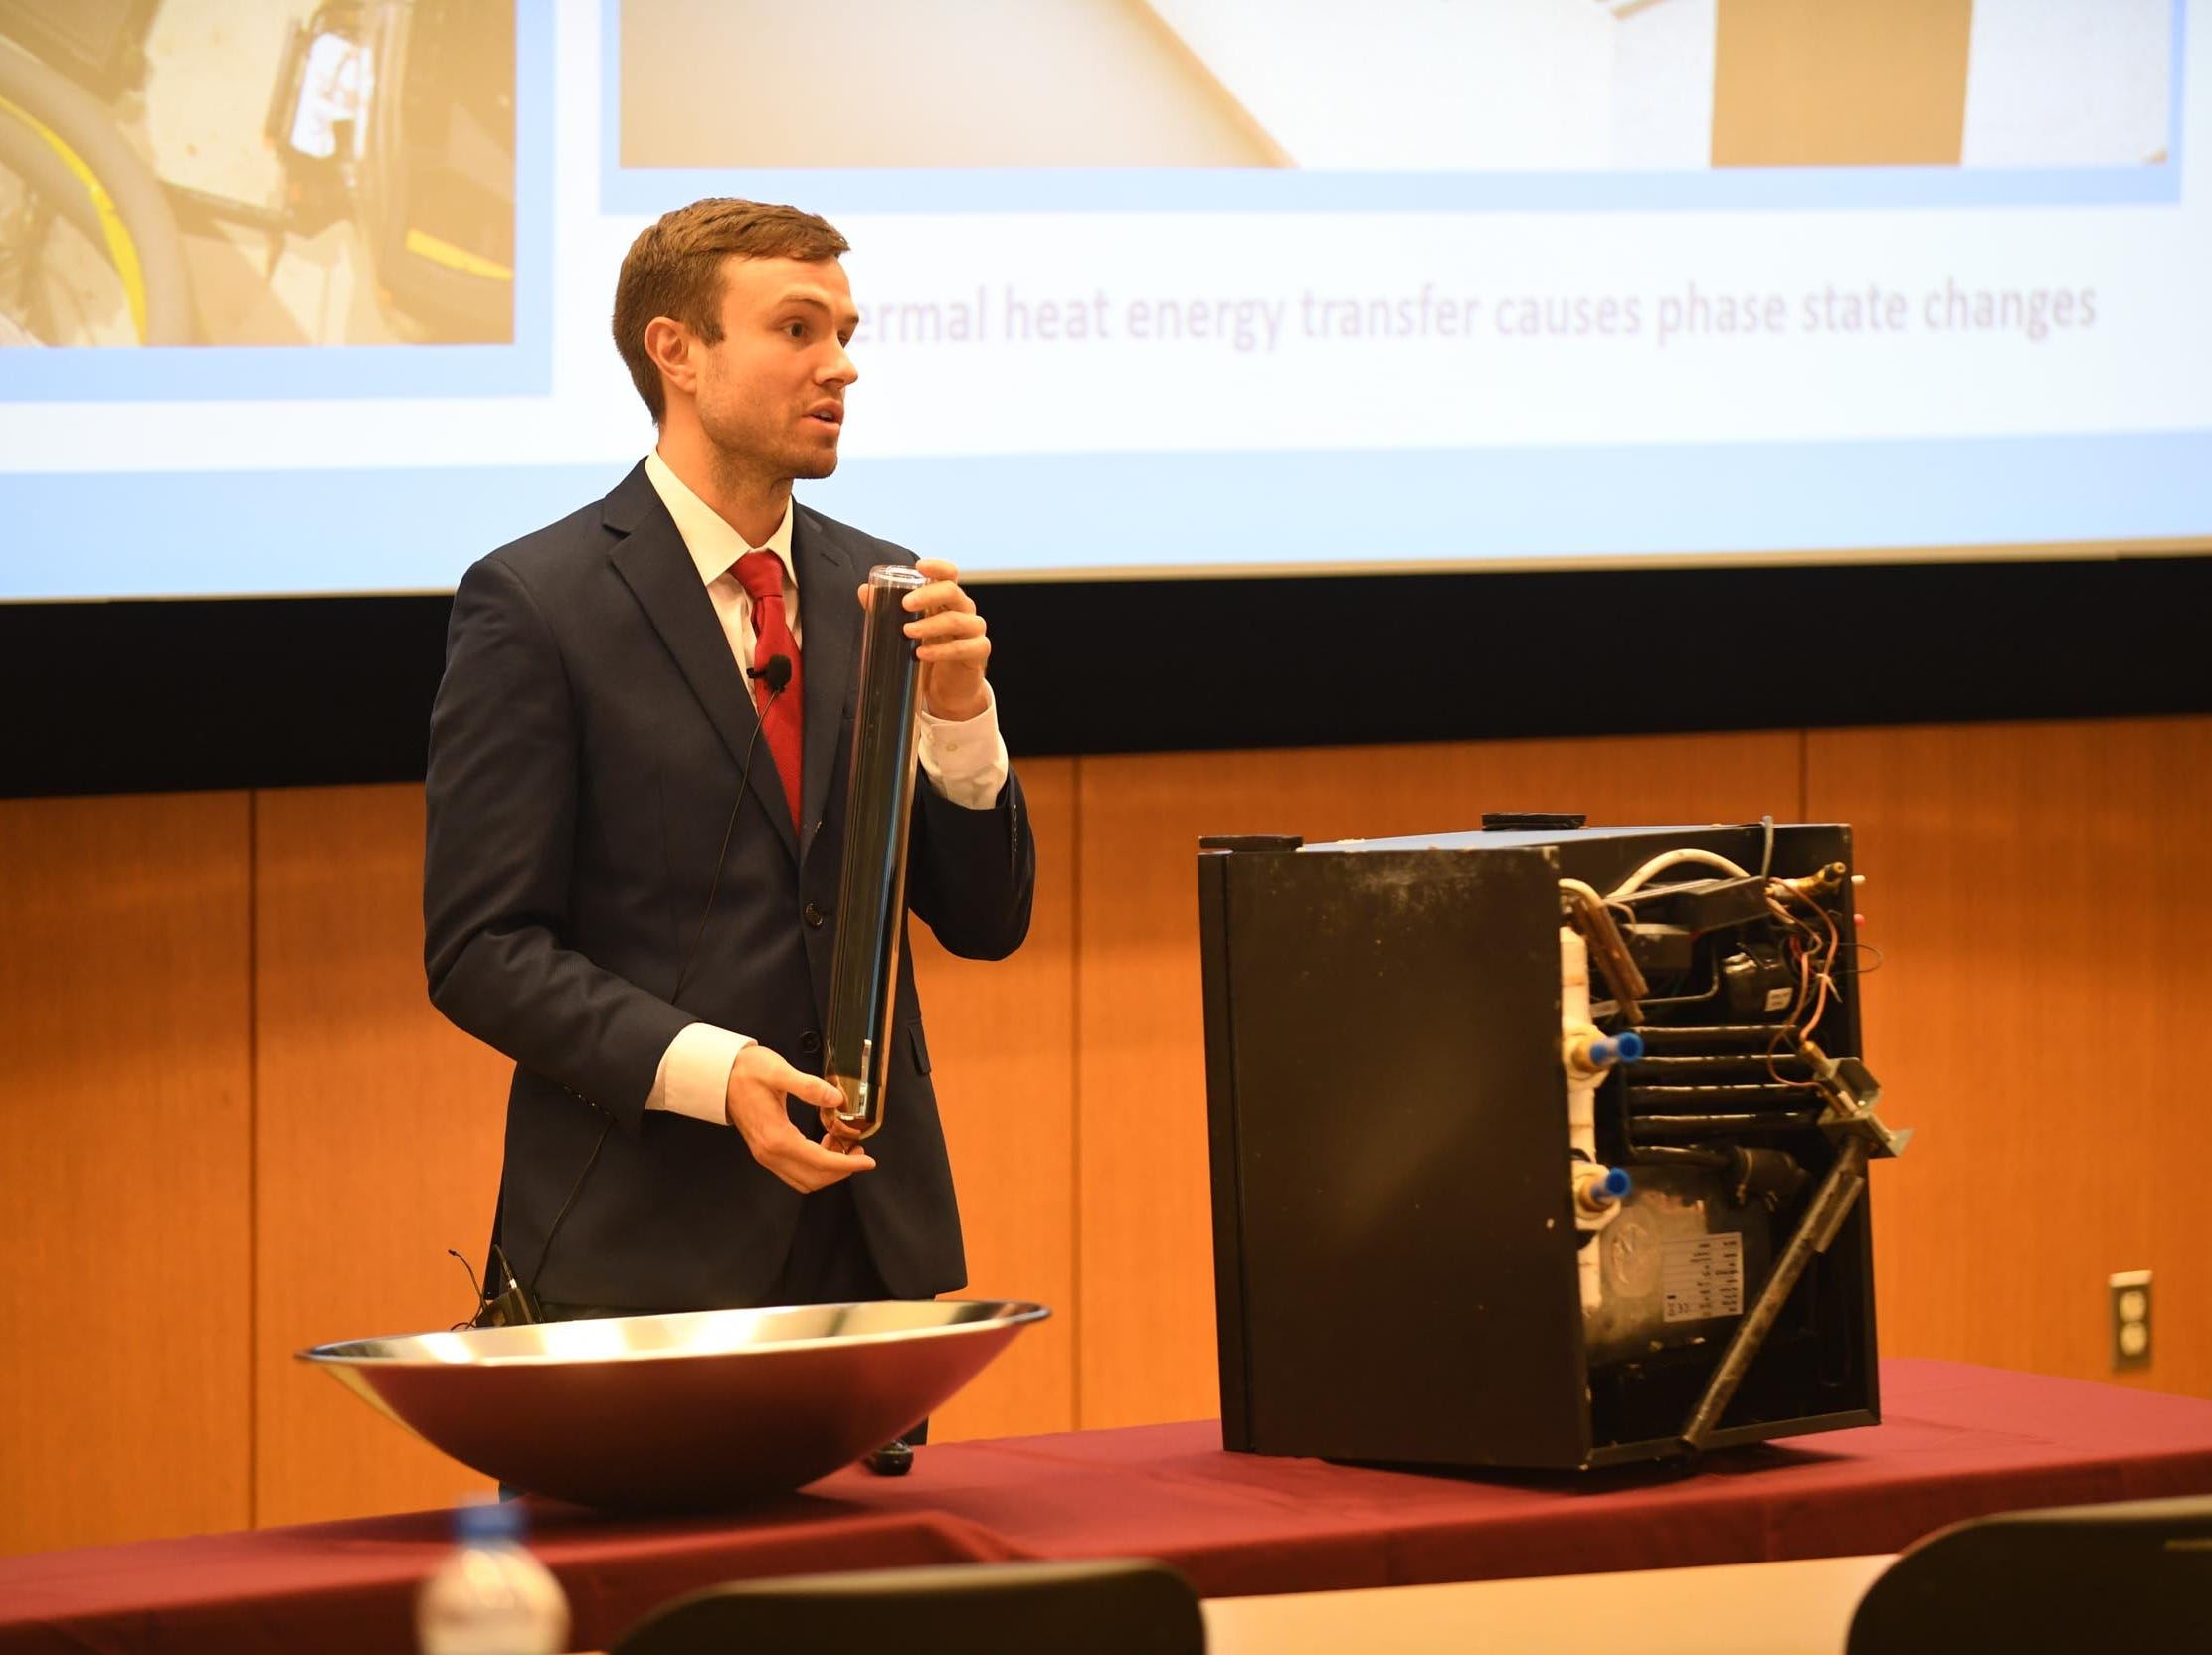 Salisbury University Student, Ronald Cavelius, presents his invention the Solar Green HVAC to a group of judges during the Franklin P. Perdue School of Business annual Entrepreneurship Competitions on Thursday, May 2, 2019.